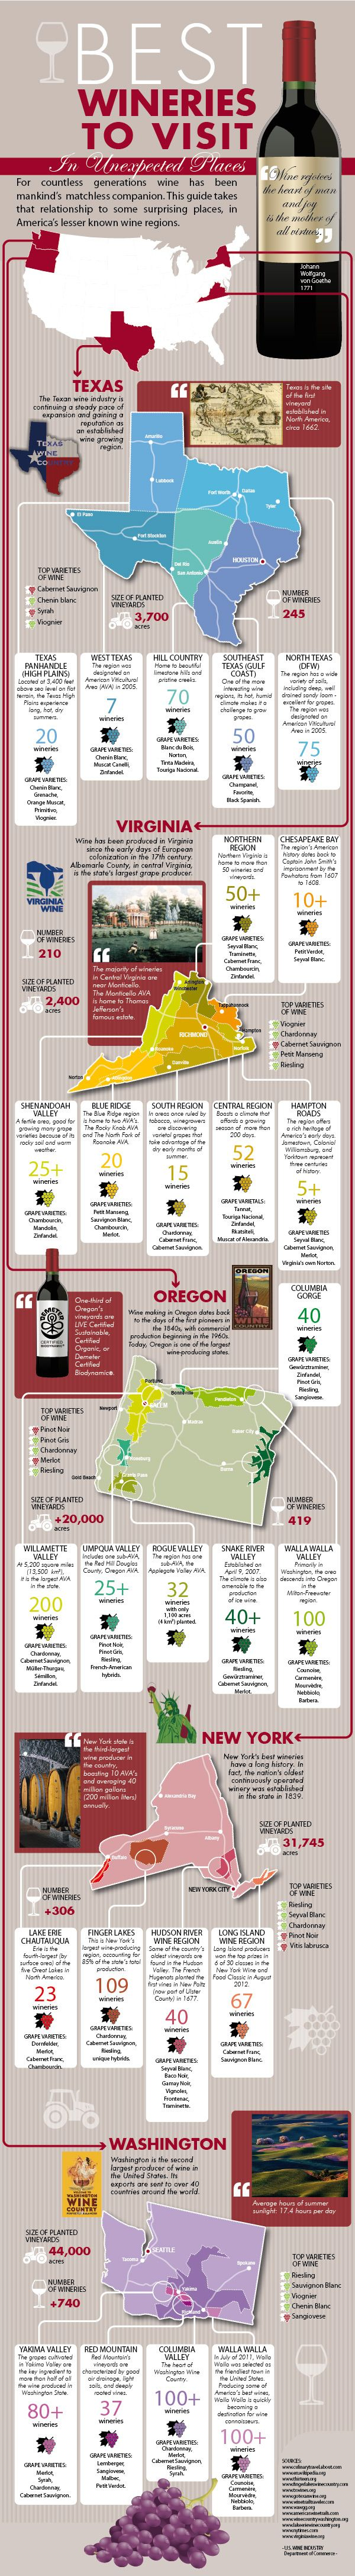 Wineries in the US | The best of Texas, Virginia, Oregon, New York and Washington wine countries